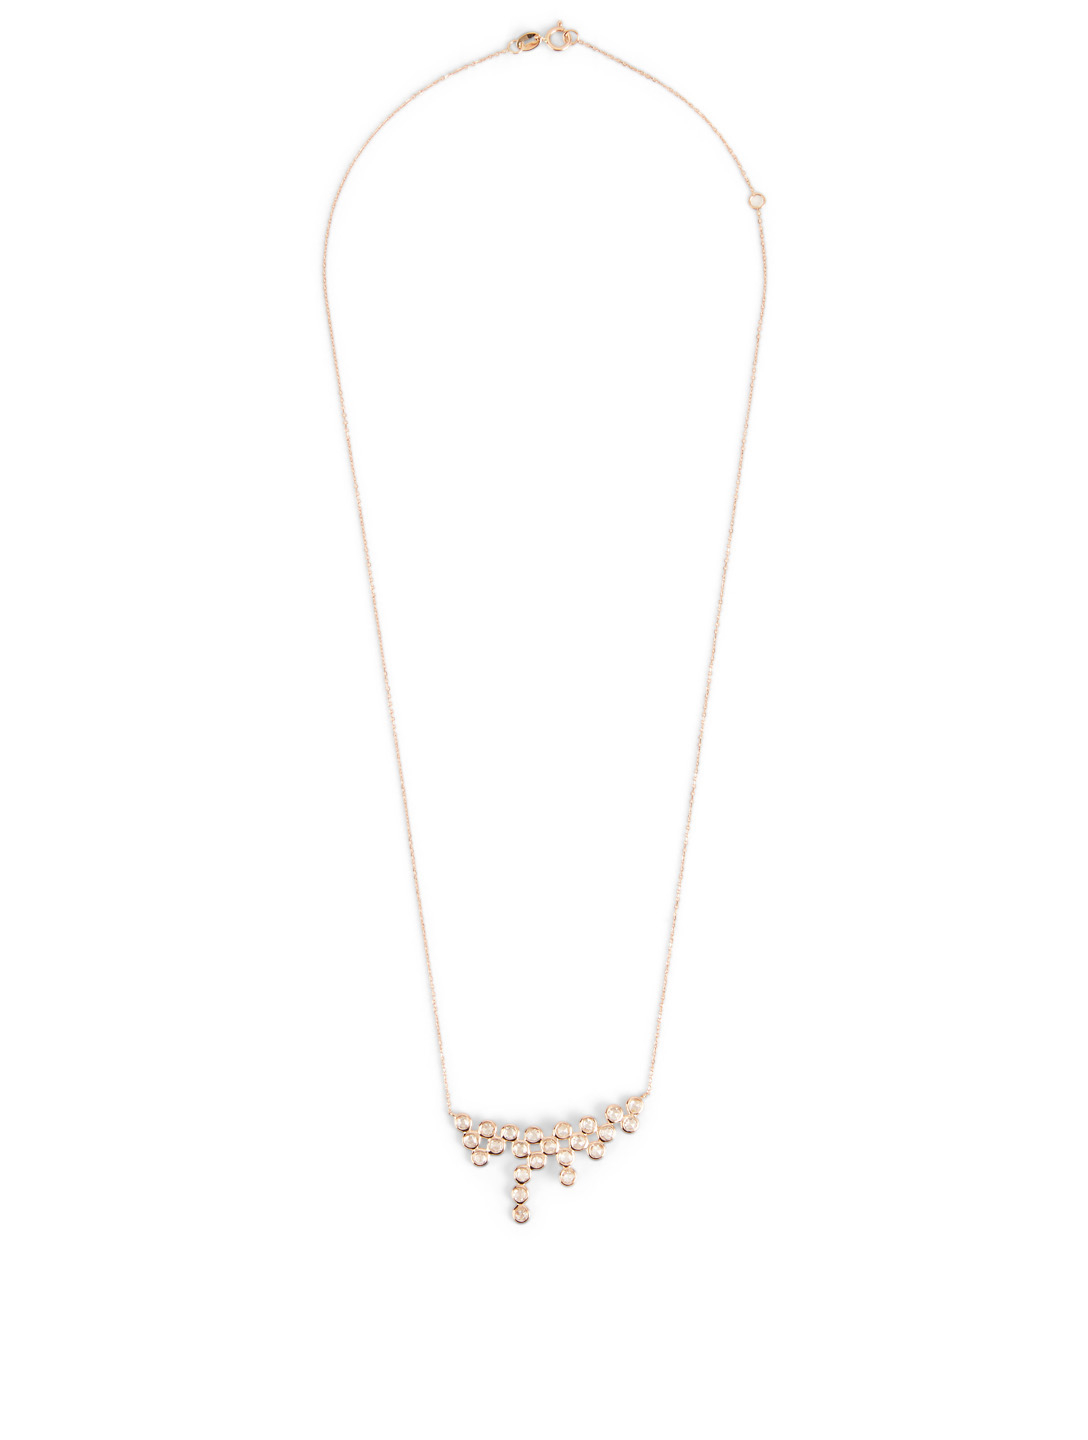 LITO Mist 18K Rose Gold Necklace With Diamonds Women's Metallic